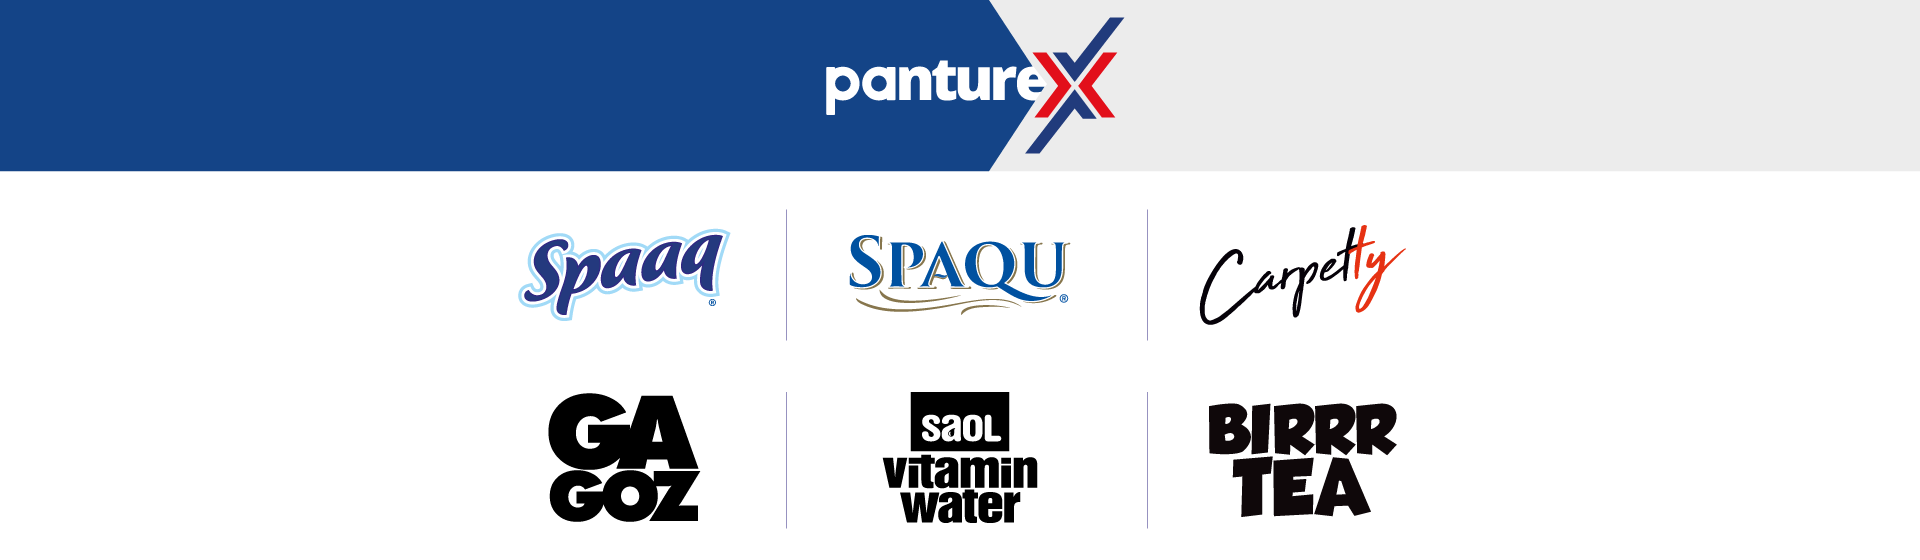 panturex consists high quality and healthy products in soft drink, hygiene and carpet sector